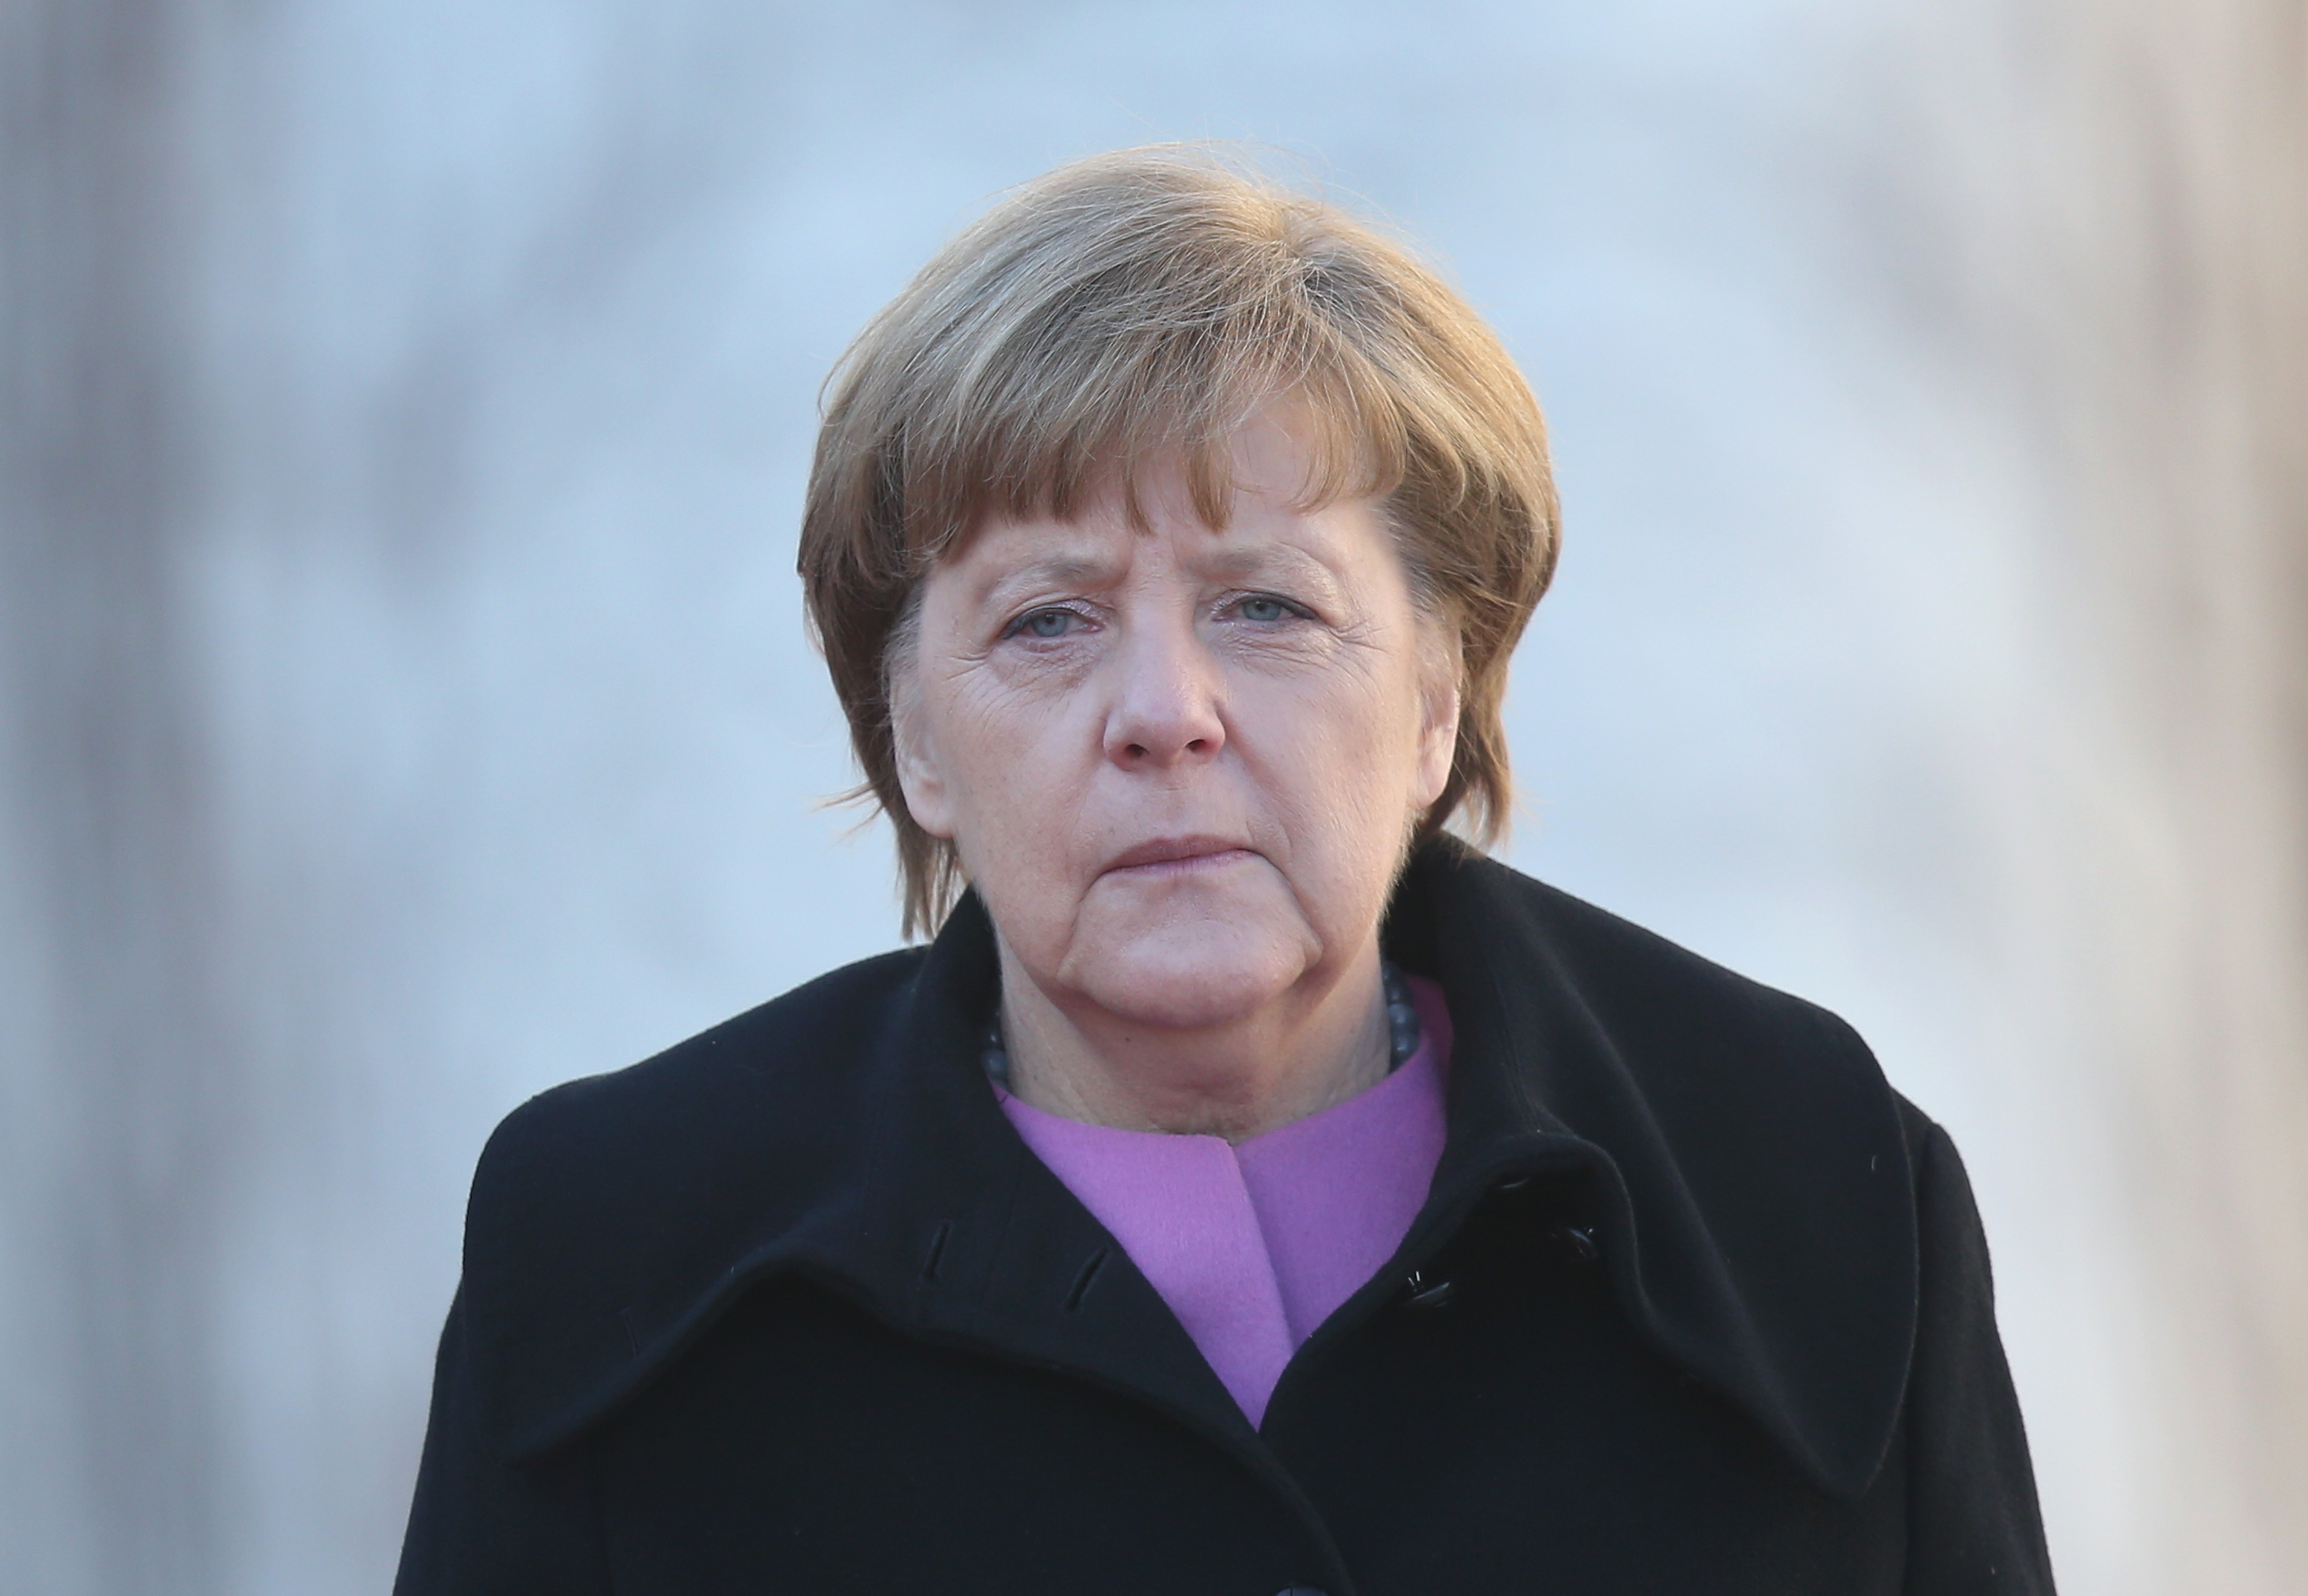 Merkel, the 'Indispensable European', Leads in Re-election Bid